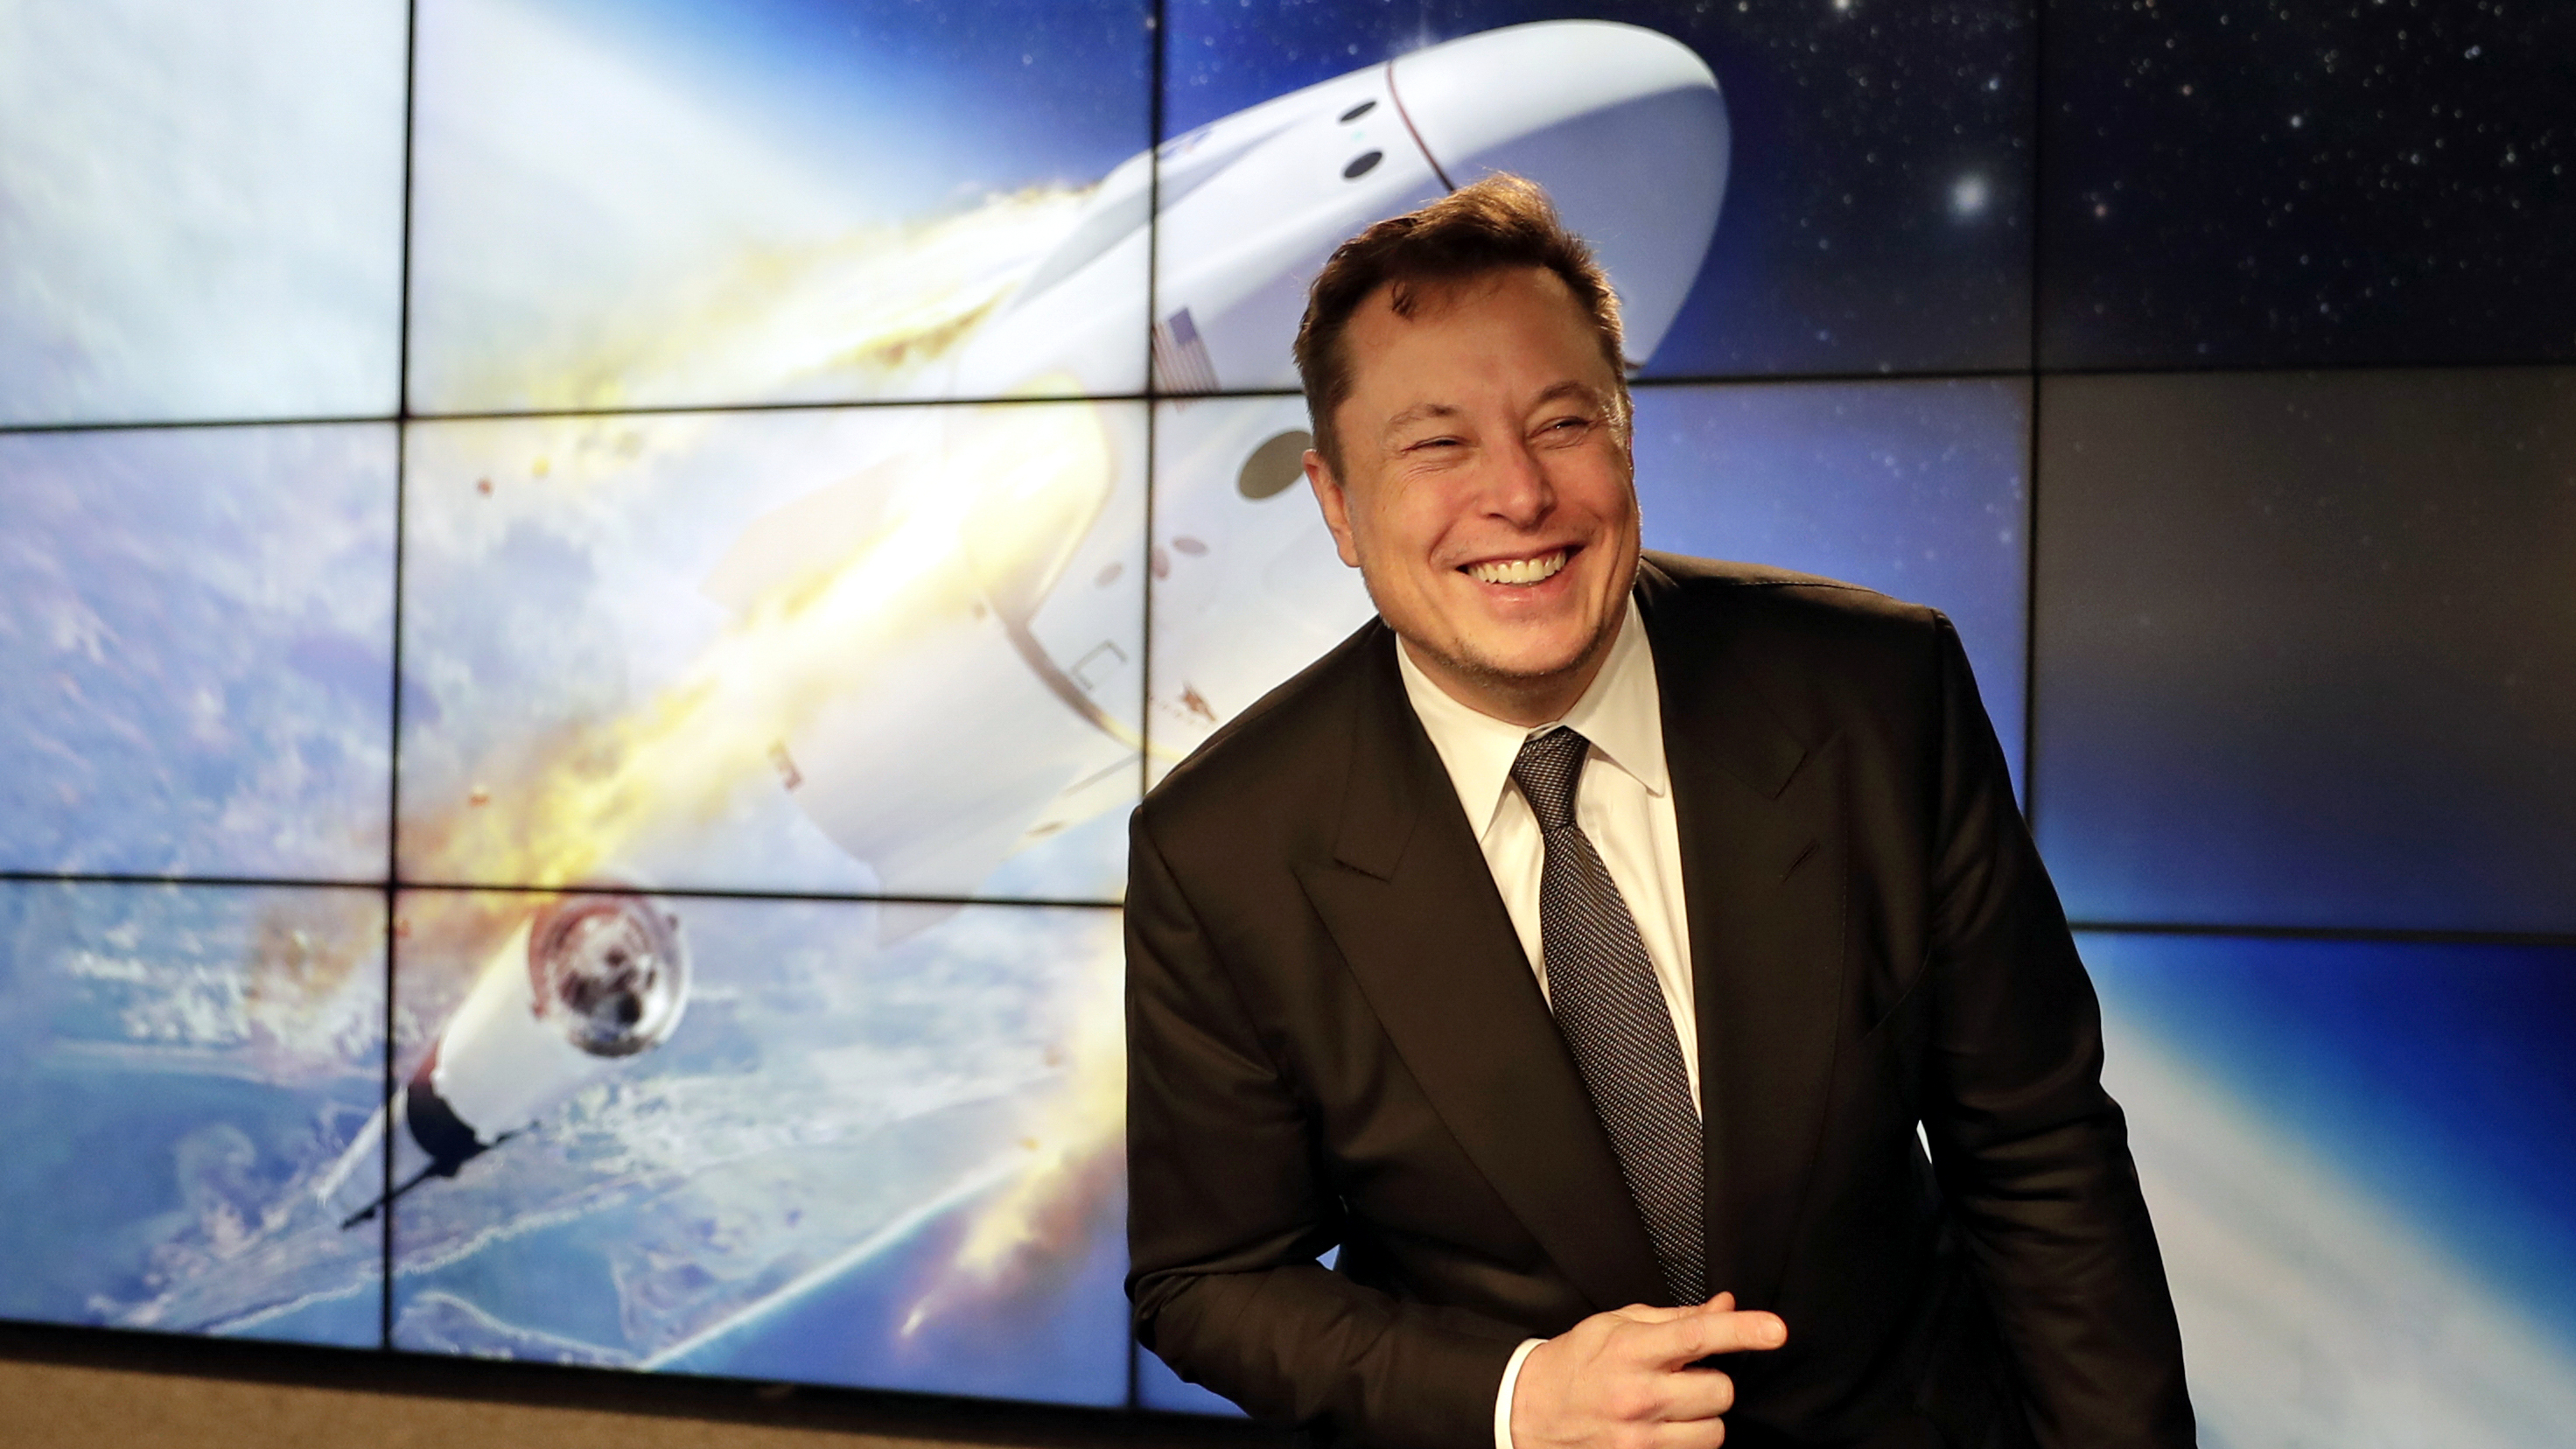 Elon Musk and the crew Dragon spacecraft.